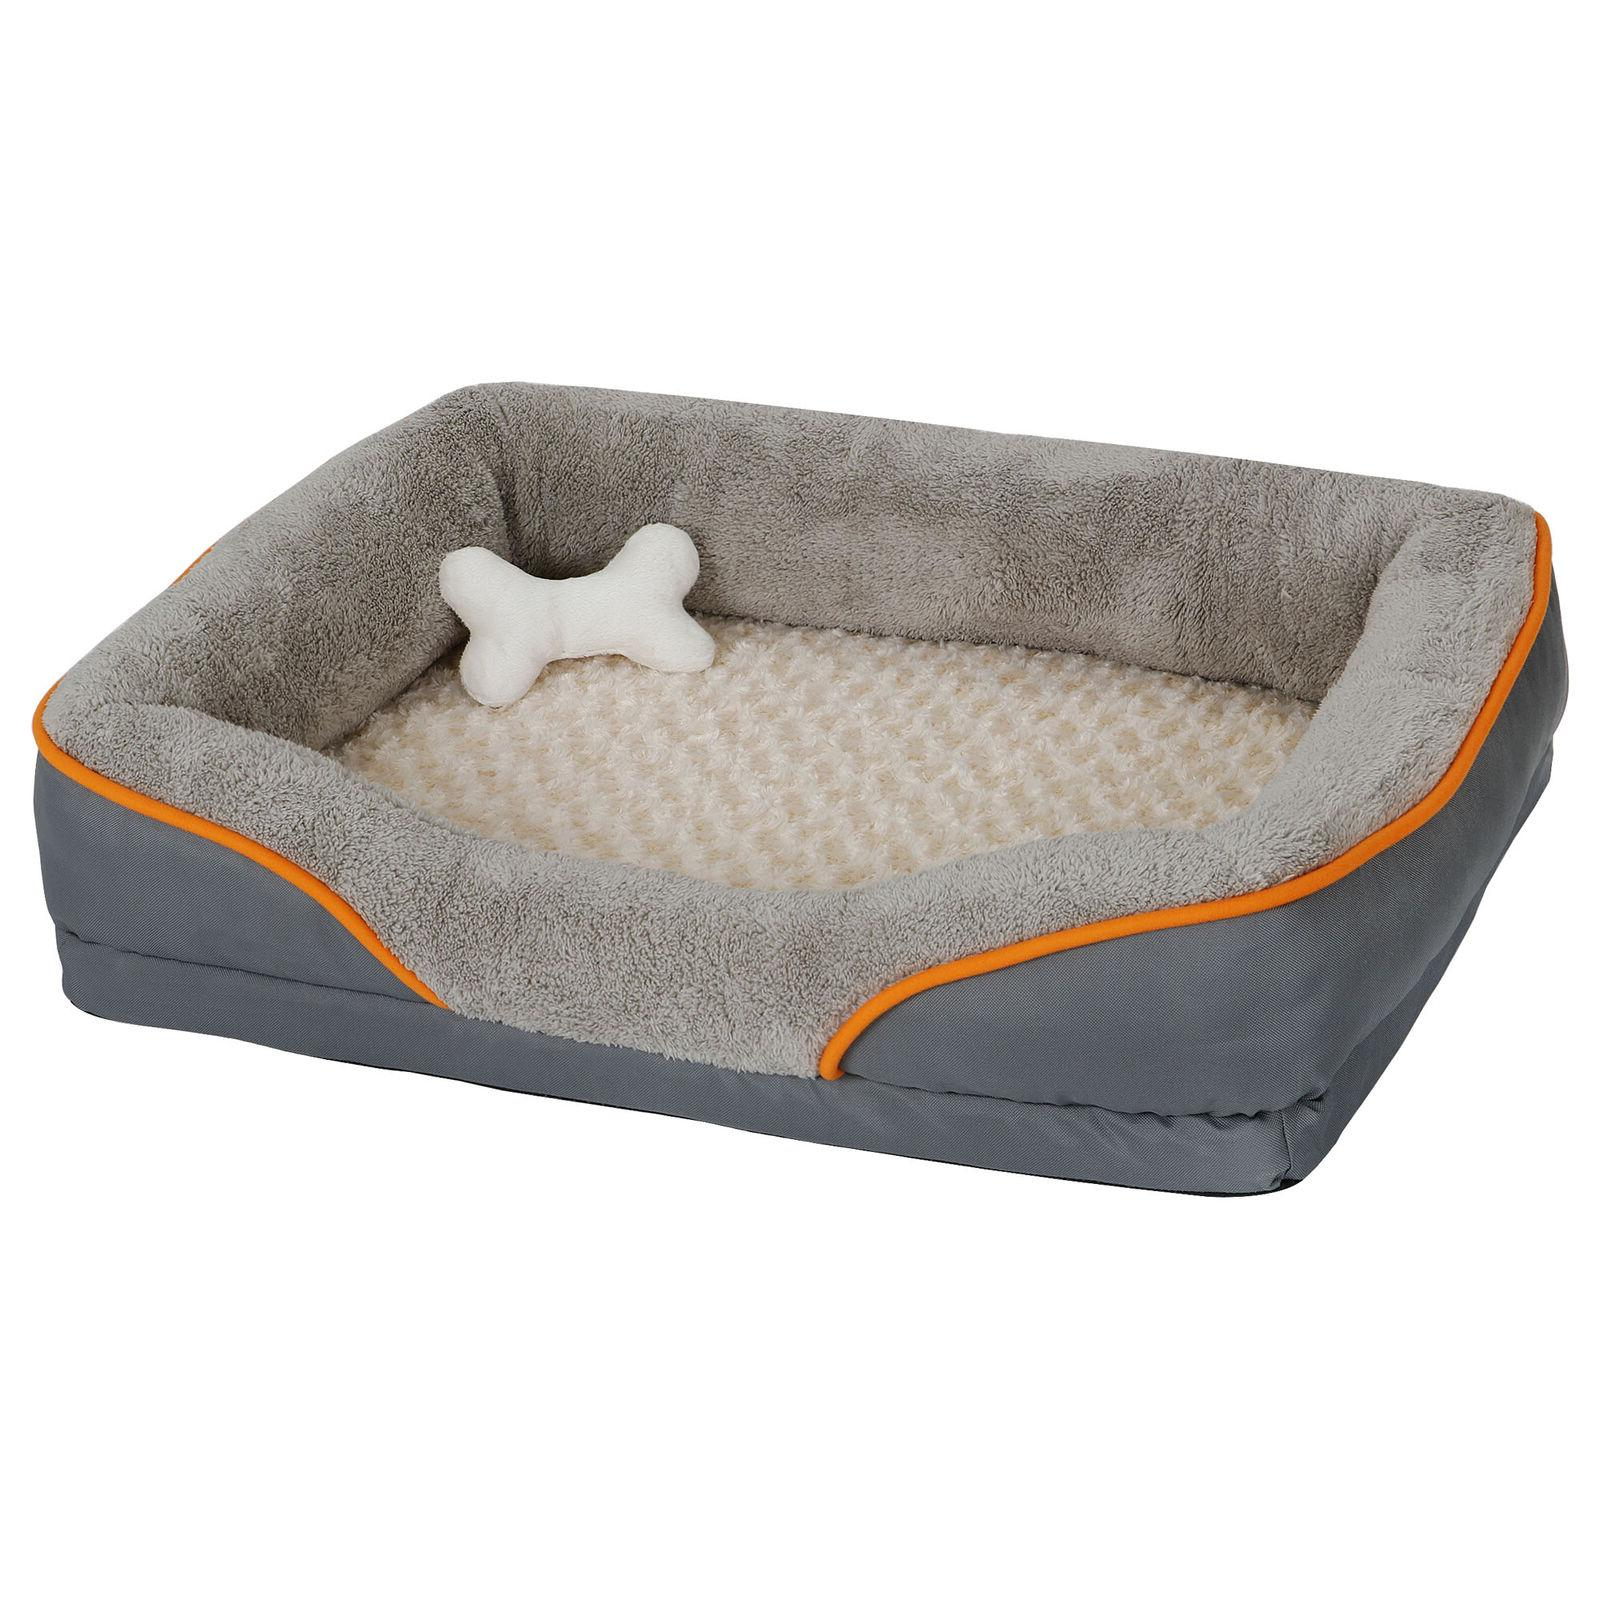 Washable Durable Pet Sofa Bed Soft Memory Foam